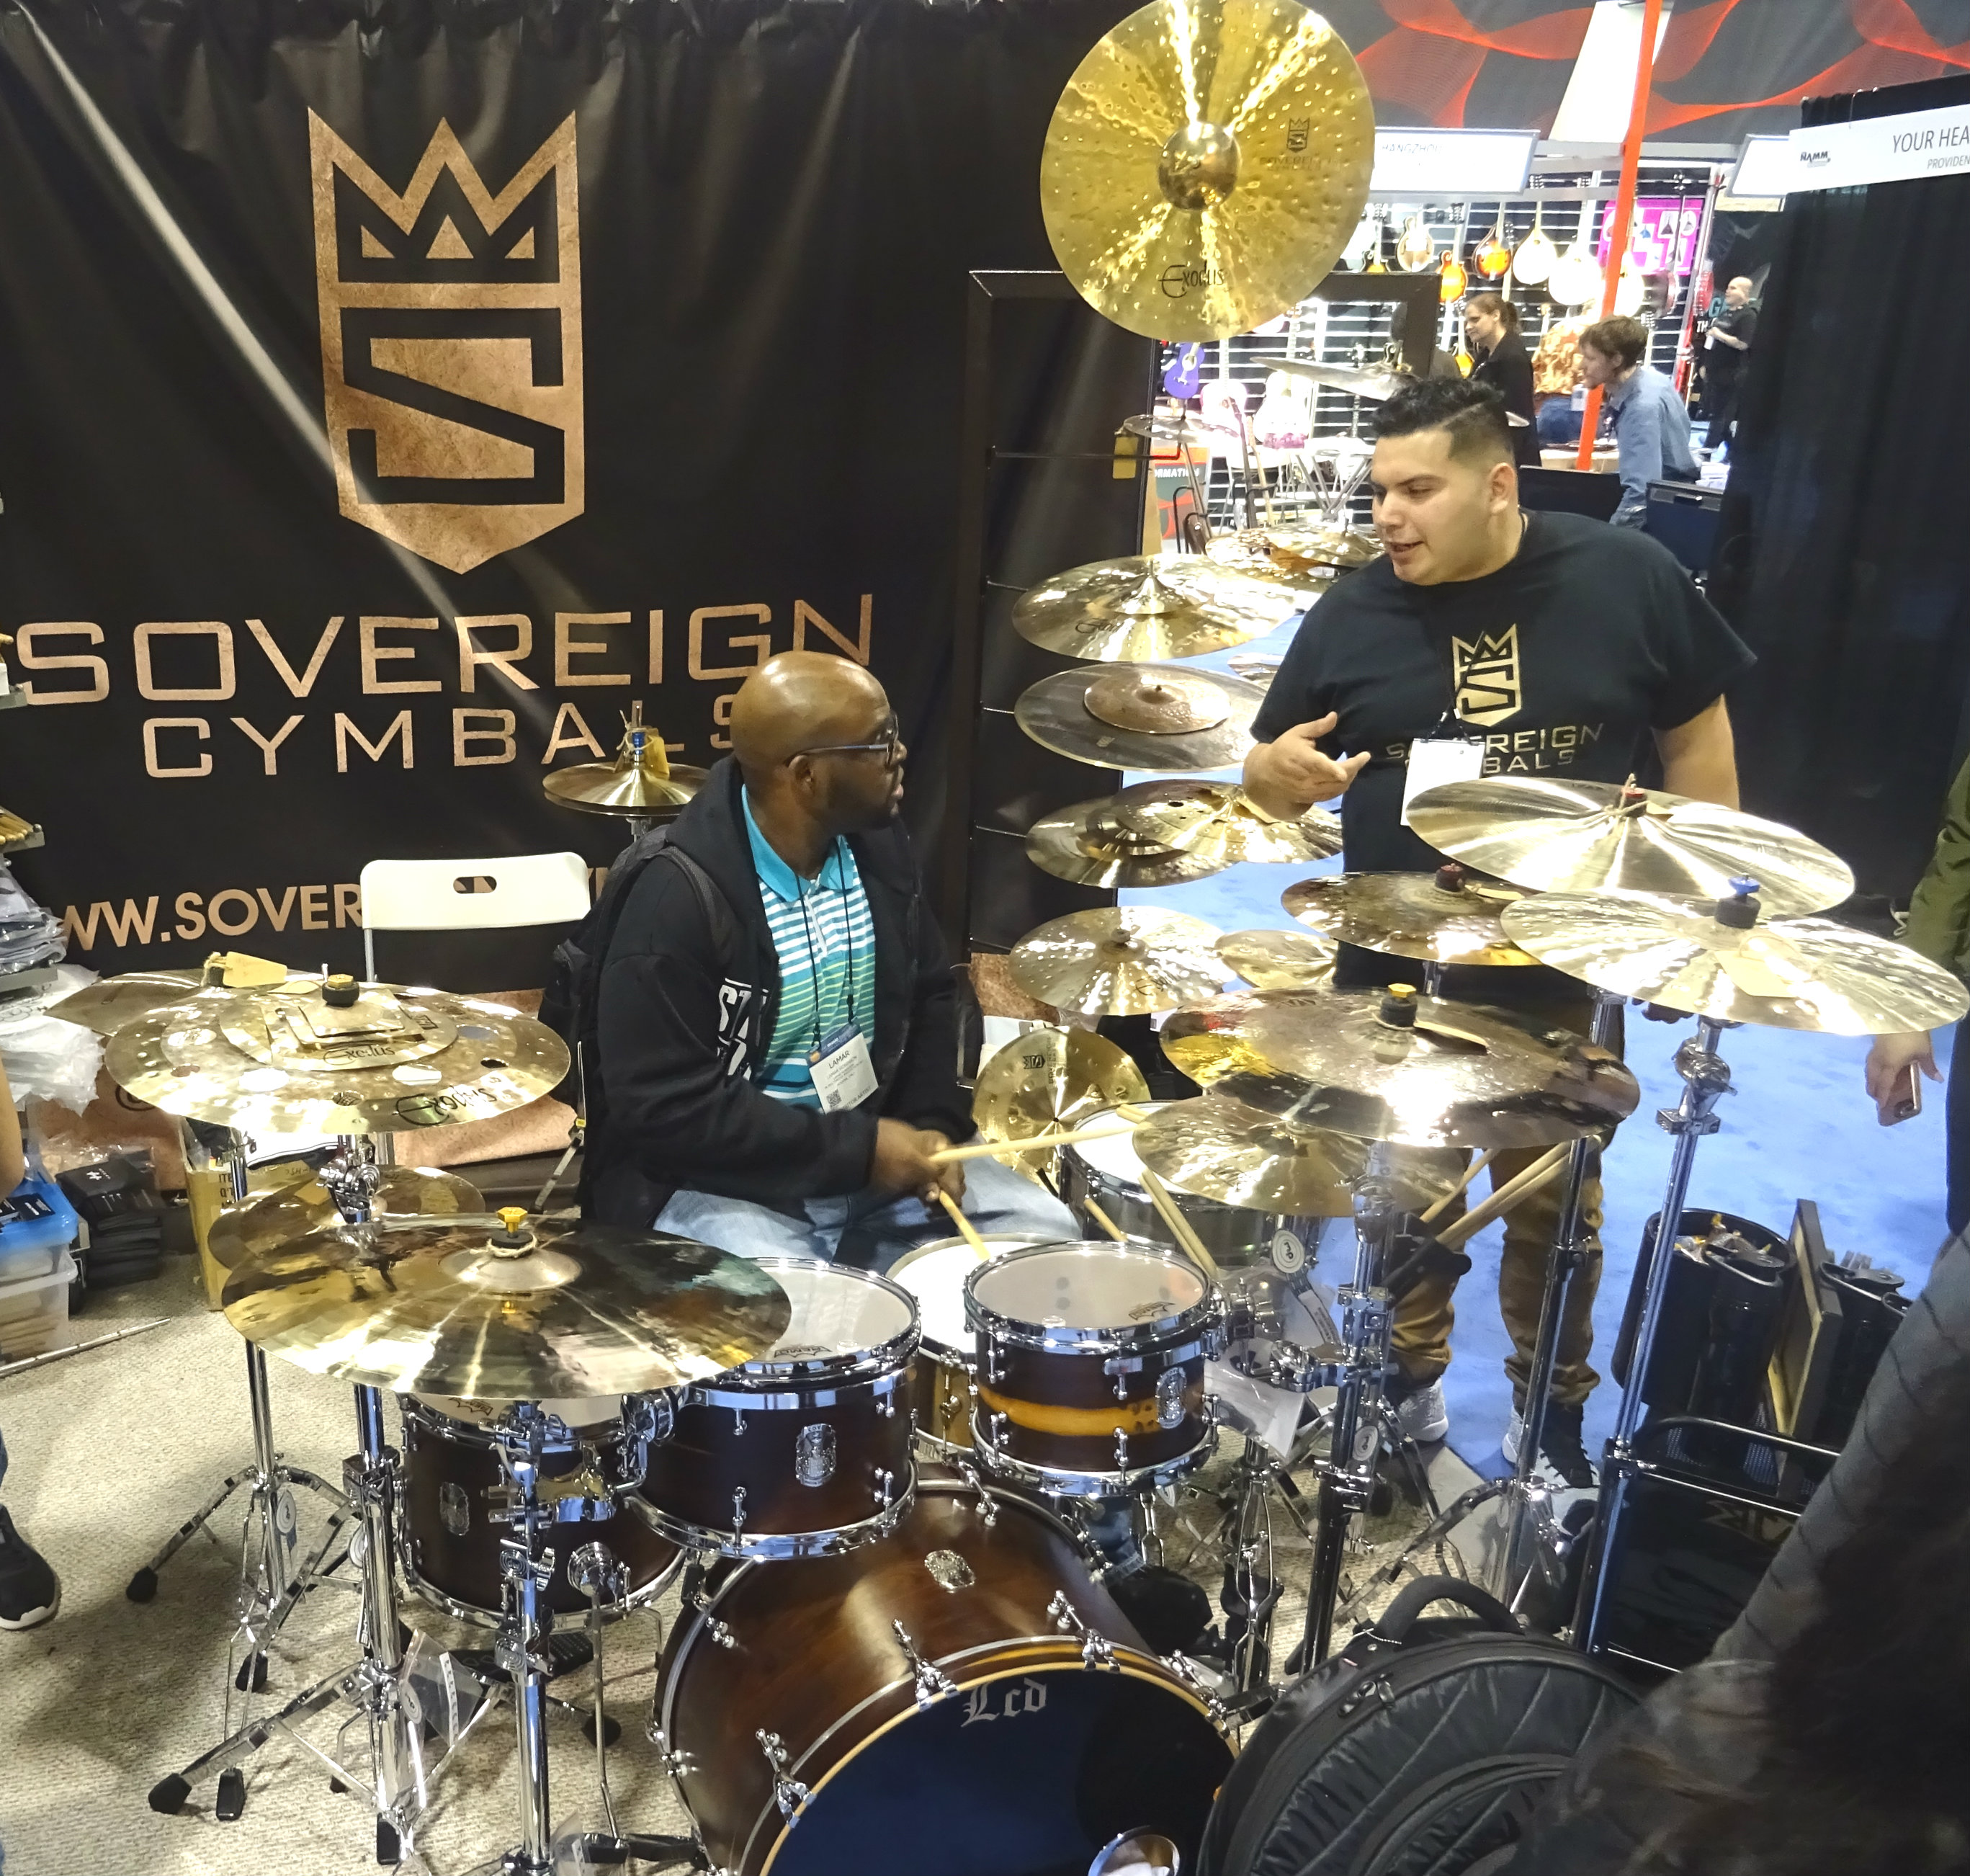 SOVEREIGN CYMBALS